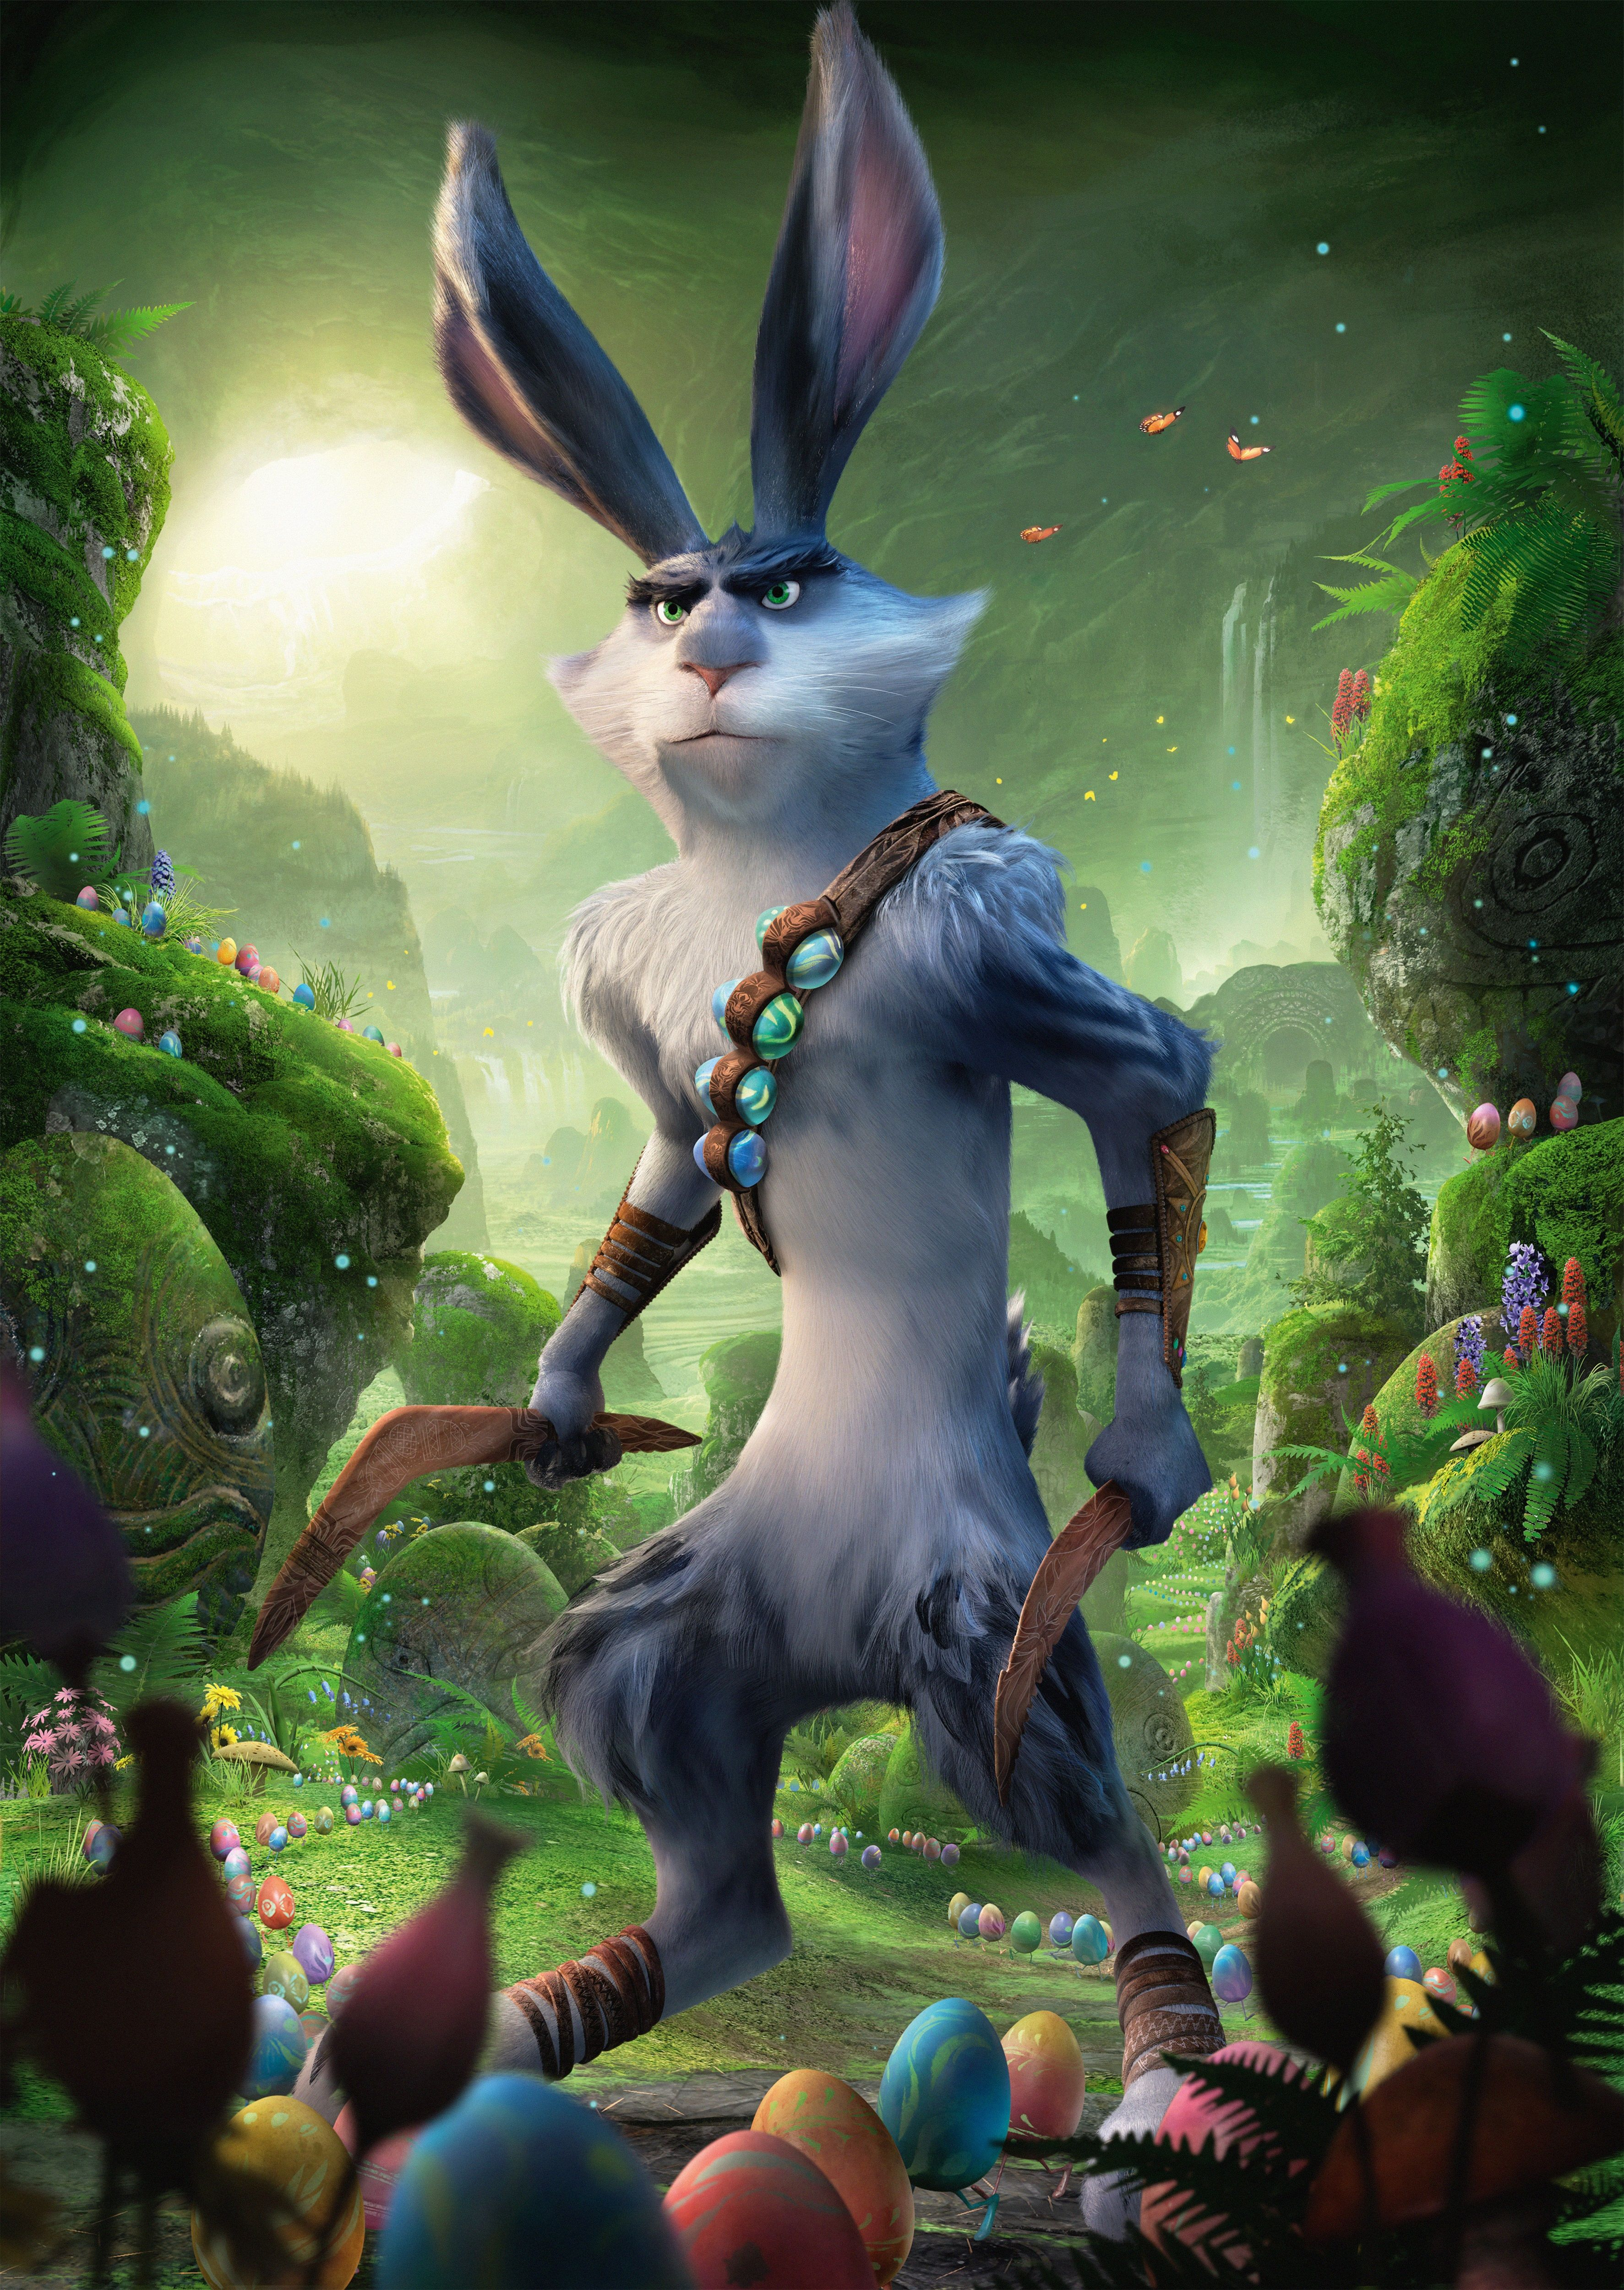 Pin By The Carolina Trader On Animation The Guardian Movie Rise Of The Guardians Animated Movies